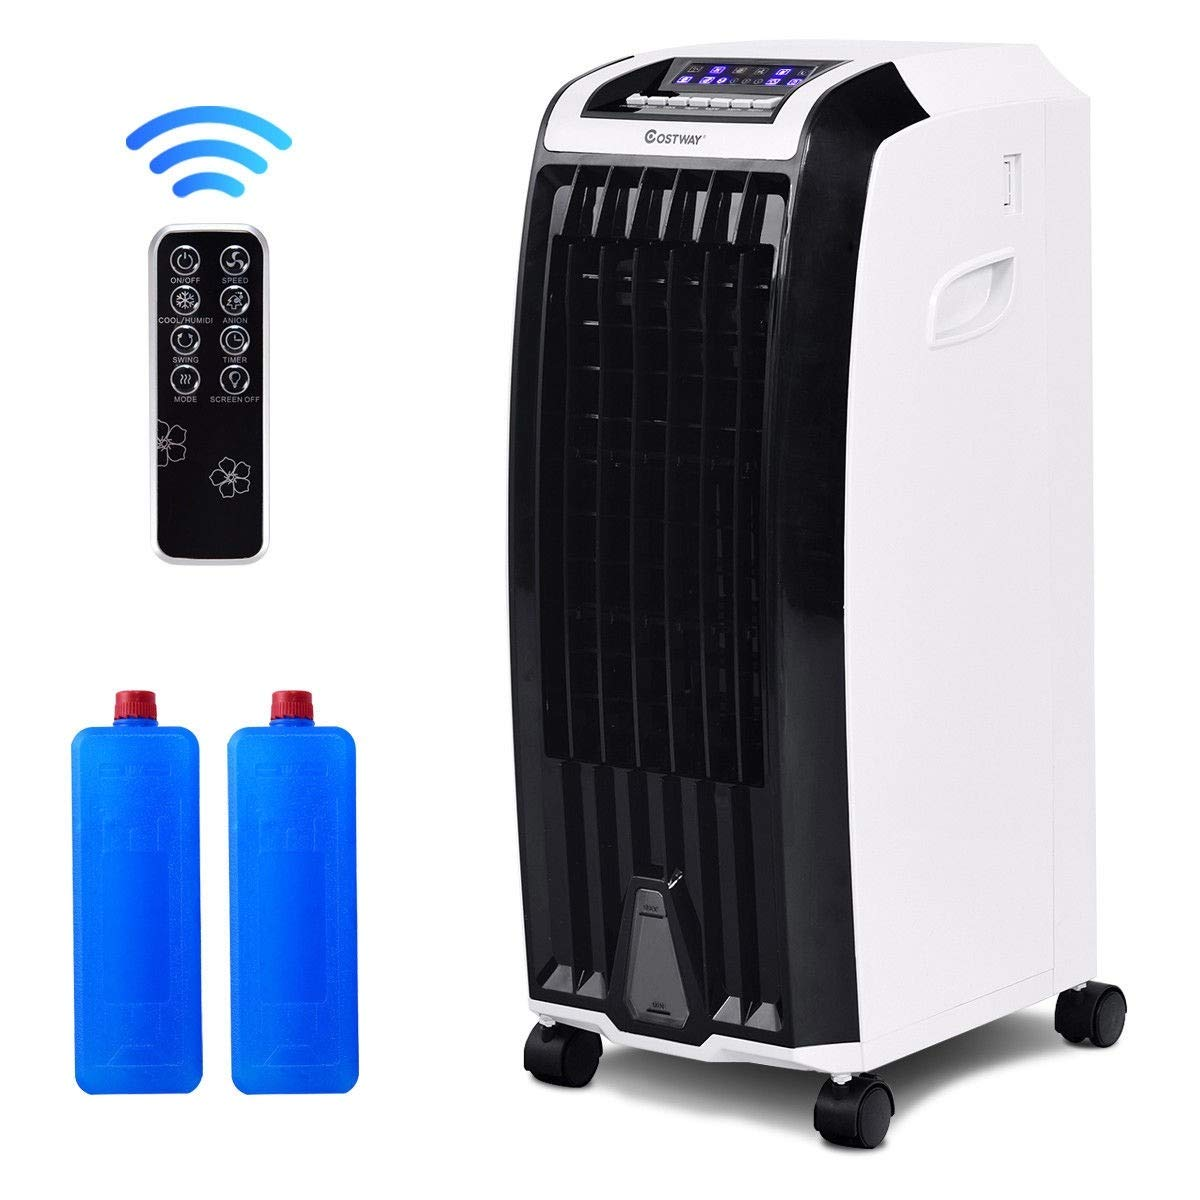 oolsempire Air Conditioner Cooler with Fan /& Humidifier Anion Portable Evaporative Quiet Electric Fan with Remote Control and Ice Crystal Box 28 H